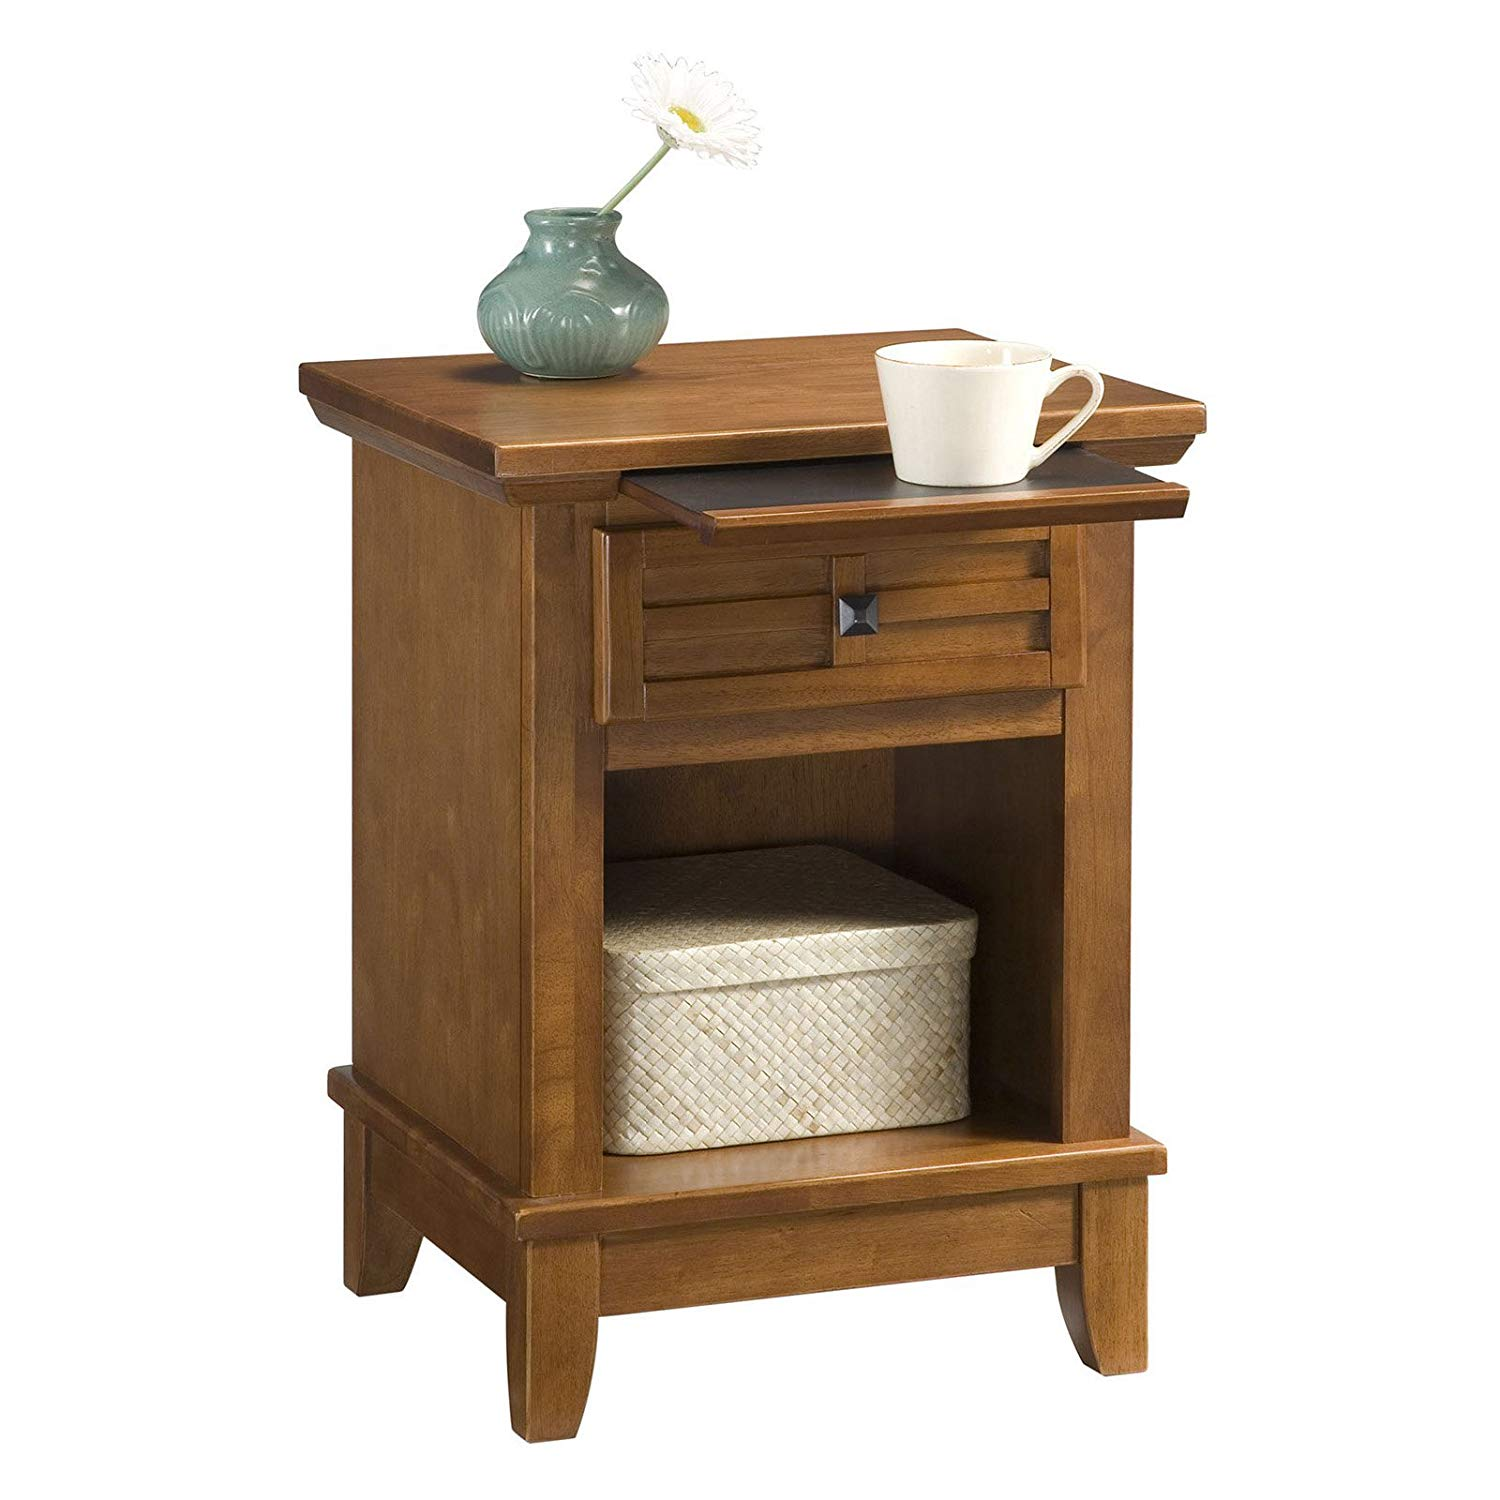 Classy Bedroom & Guest Room Nightstand With Square Brushed Nickel Hardware, Pull-Tray With A Scratch- And Stain-Resistant Finish, Hardwood Solids & Engineered Wood Construction, Oak Finish